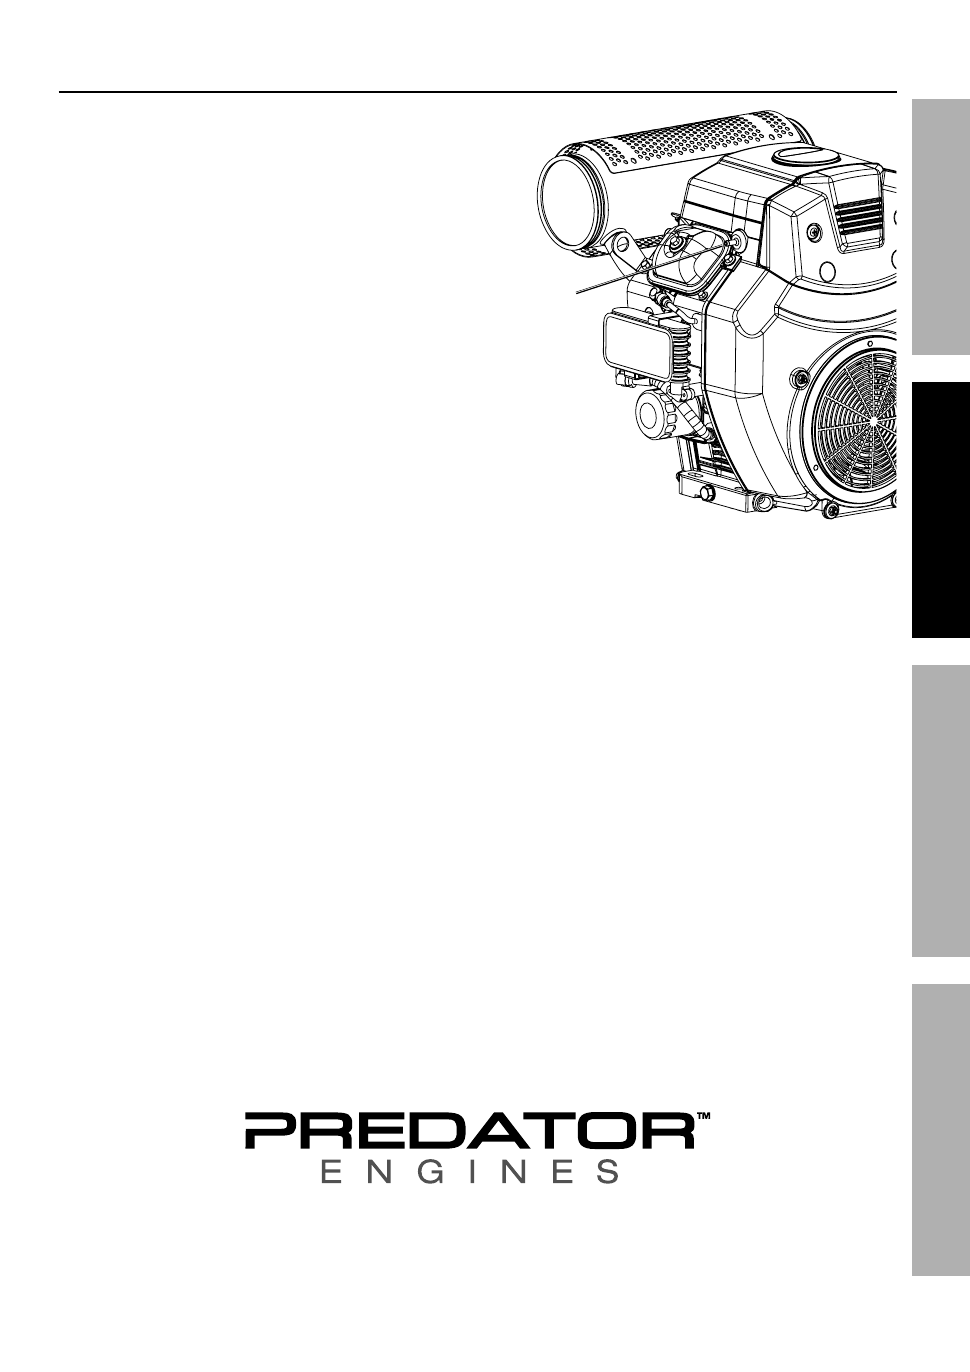 Predator 420 Crankshaft Bolt Size